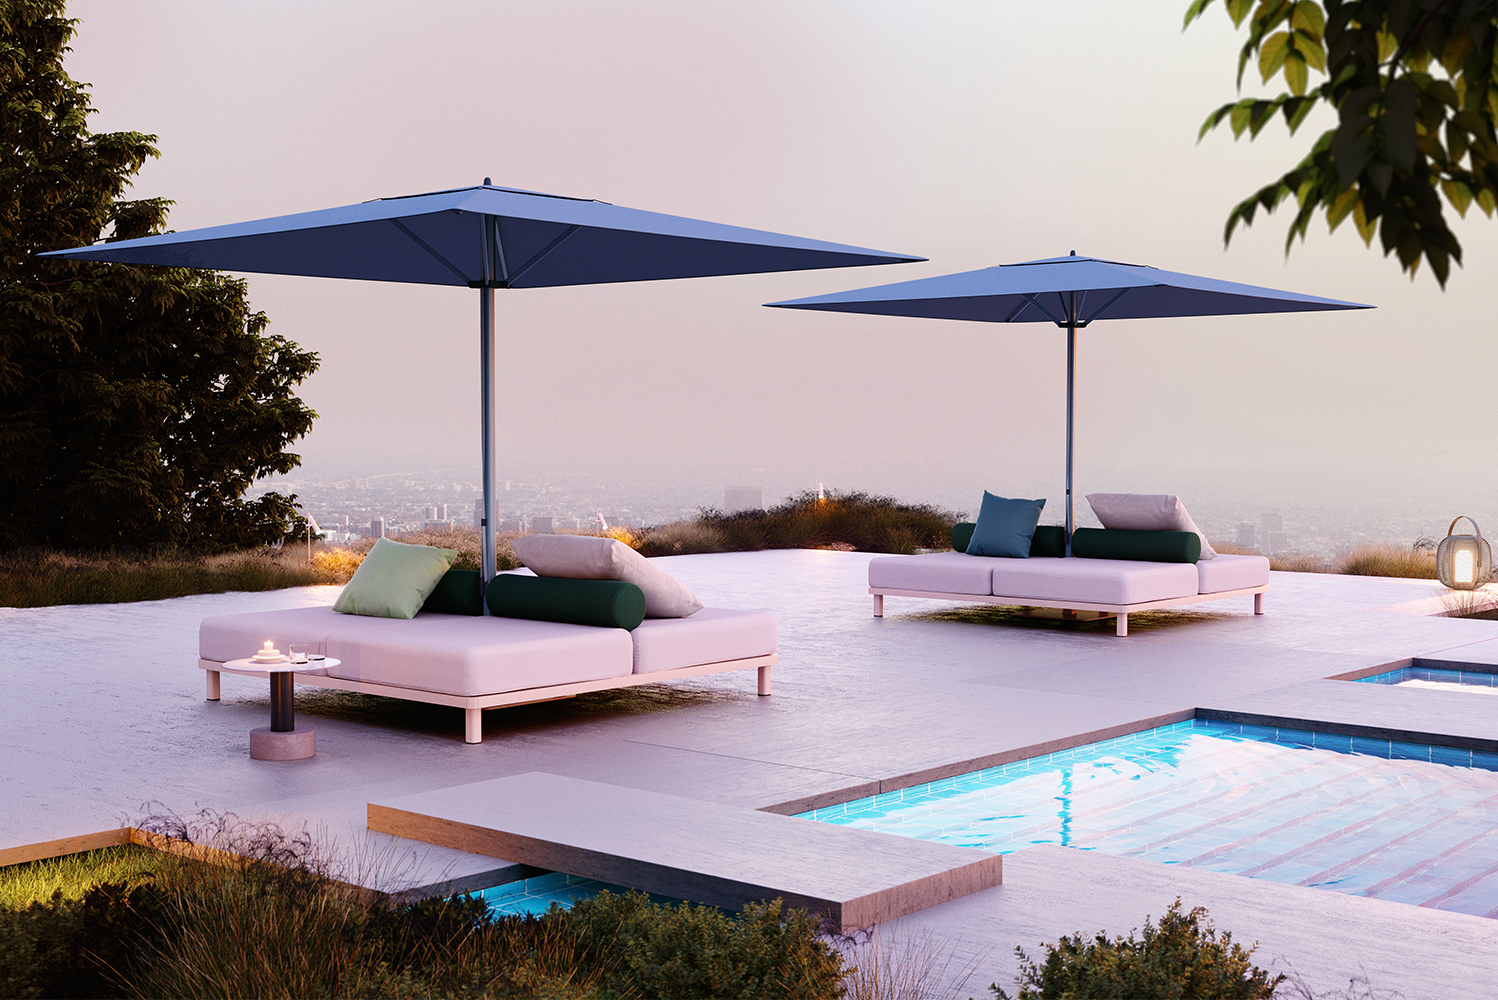 The parasols are available in all Kettal colors.